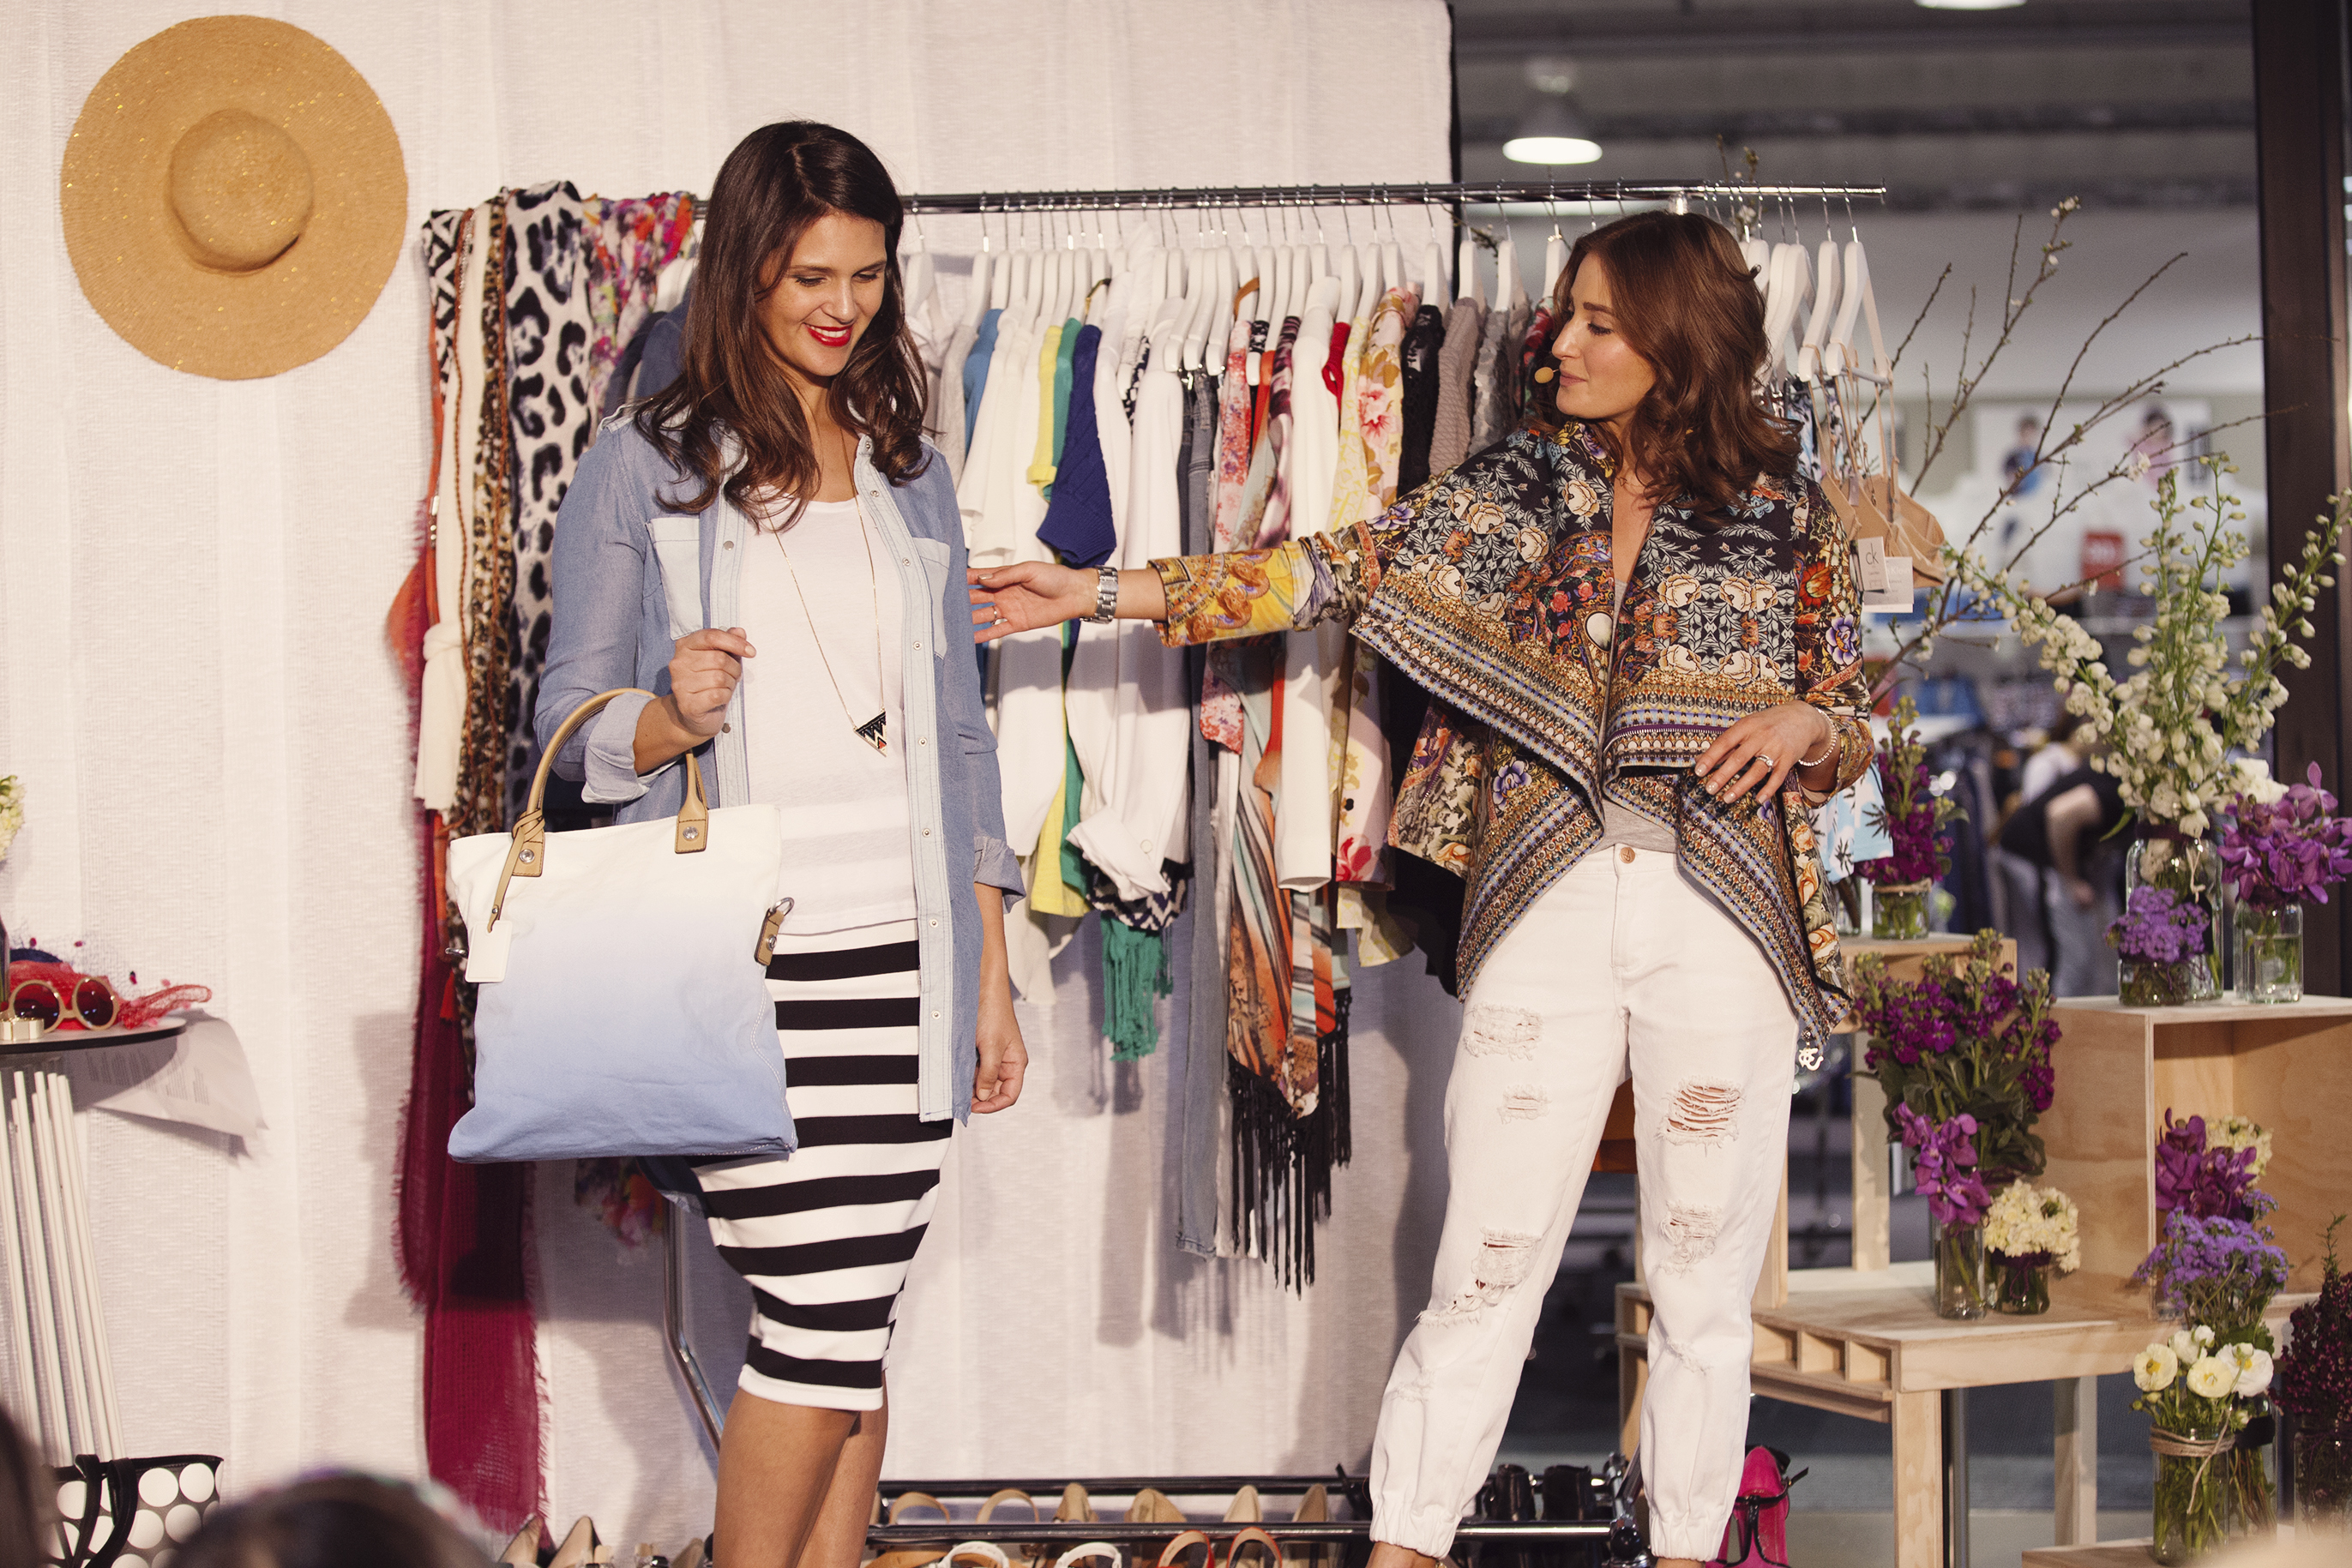 How to Keep Up With New Fashion Style Without Breaking the Bank